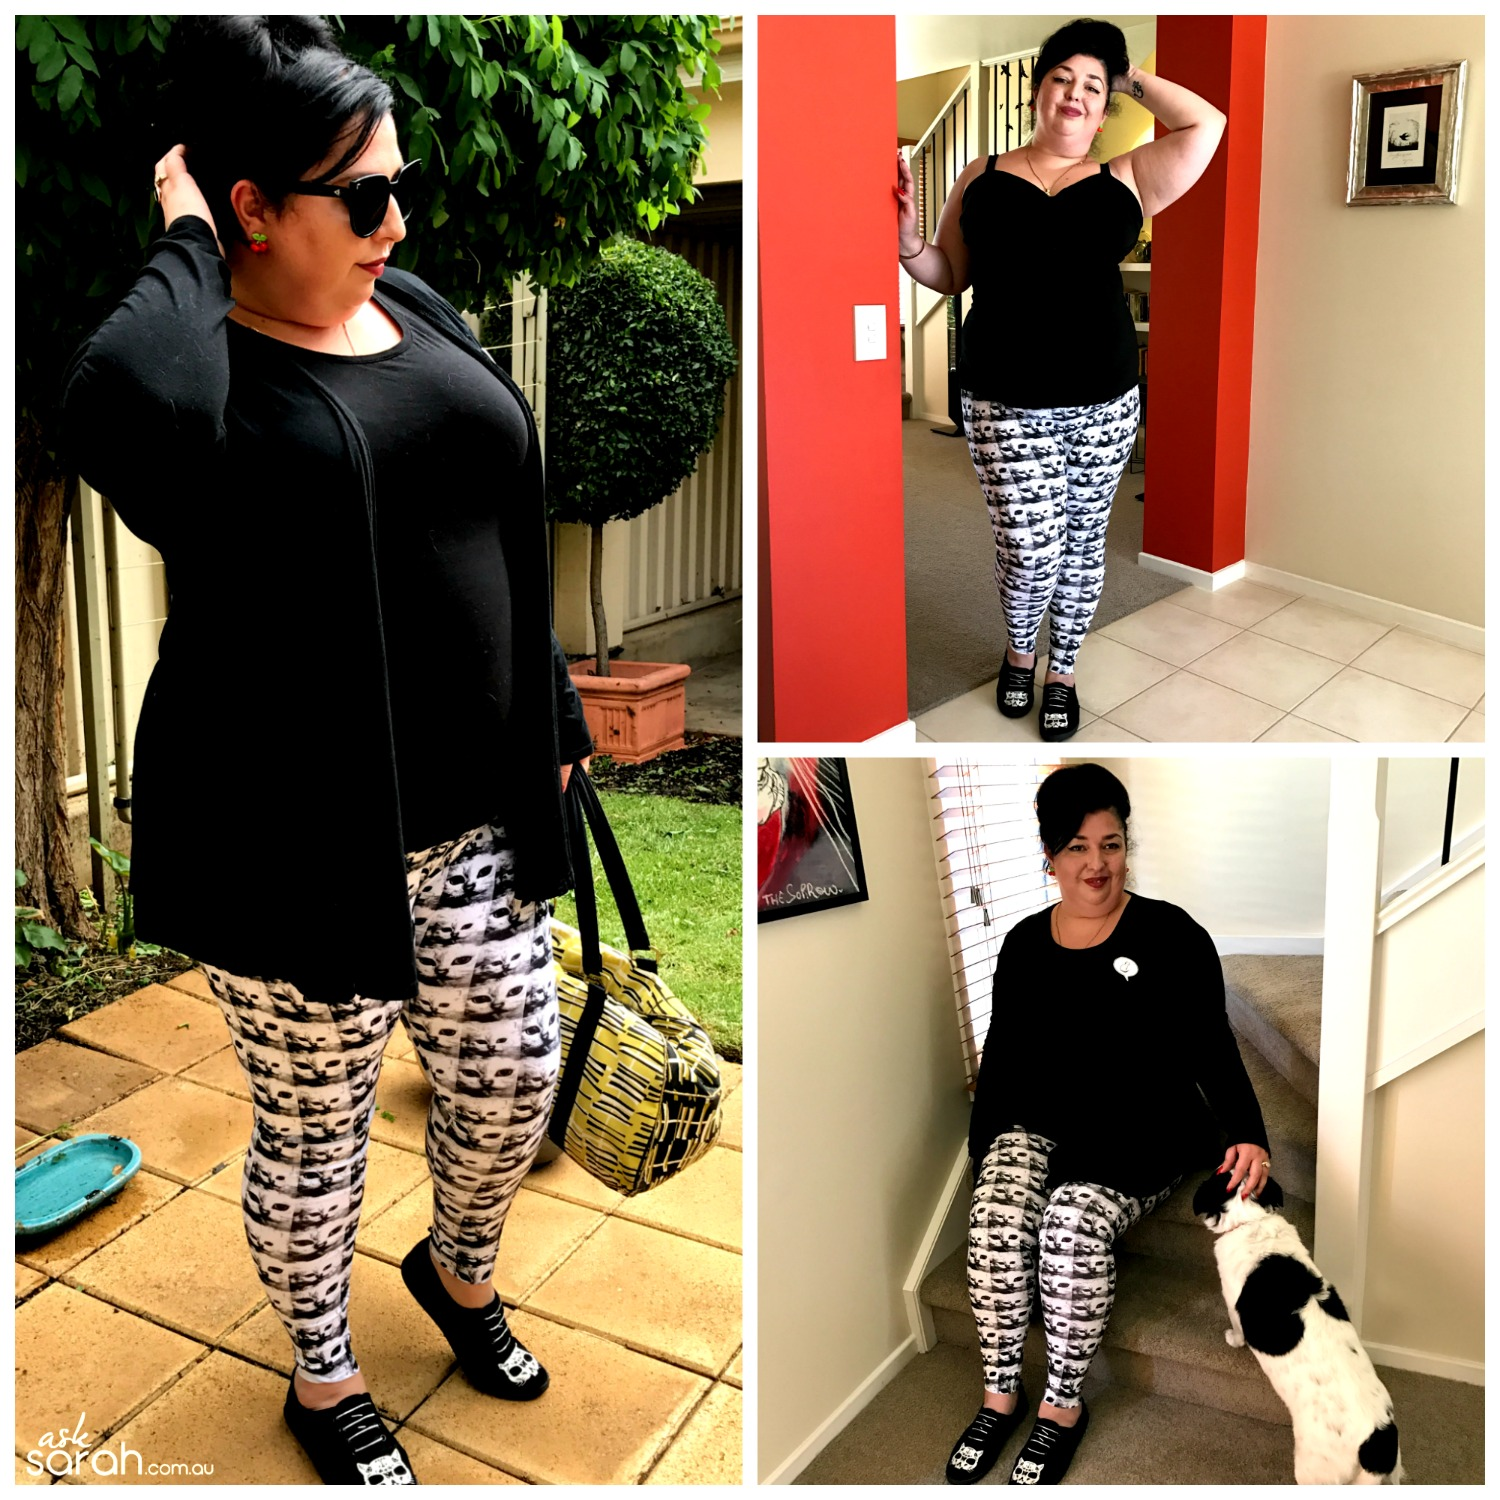 Sew DIY Leggings Tutorial {Make A Pattern From An Existing Pair Without Cutting Them Up} final